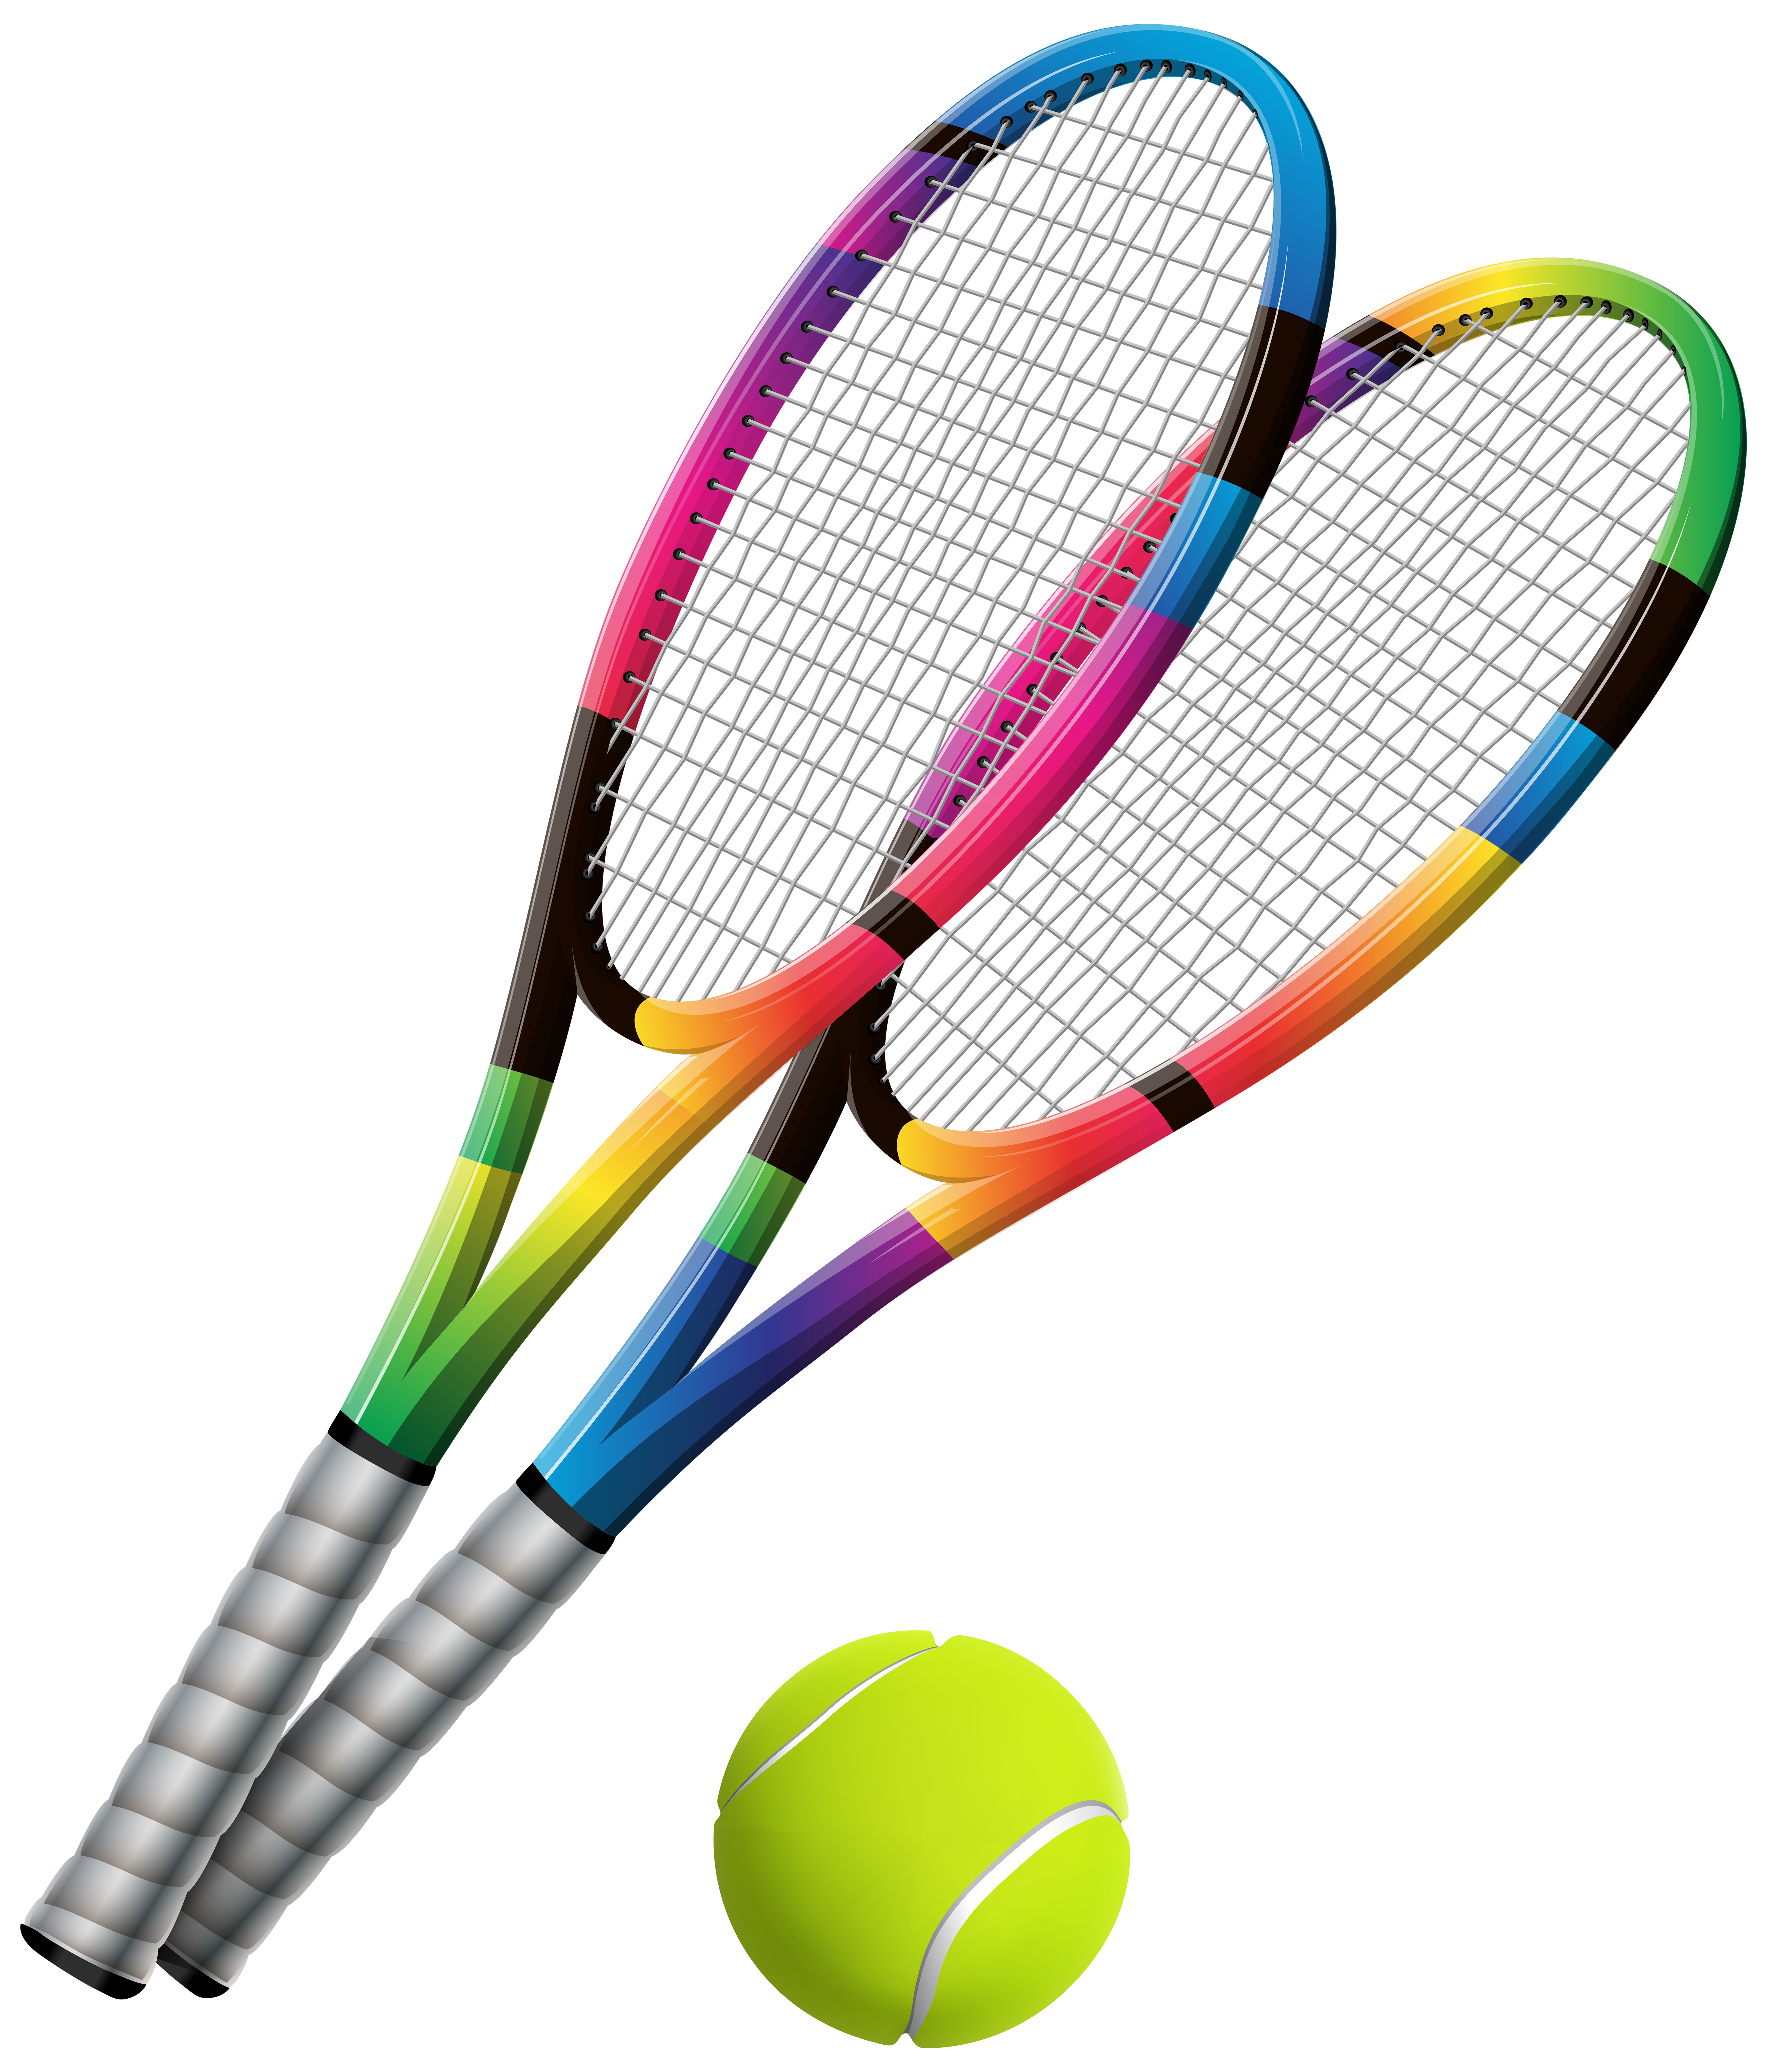 5968x7000 Ladder Clip Art Tennis – Cliparts